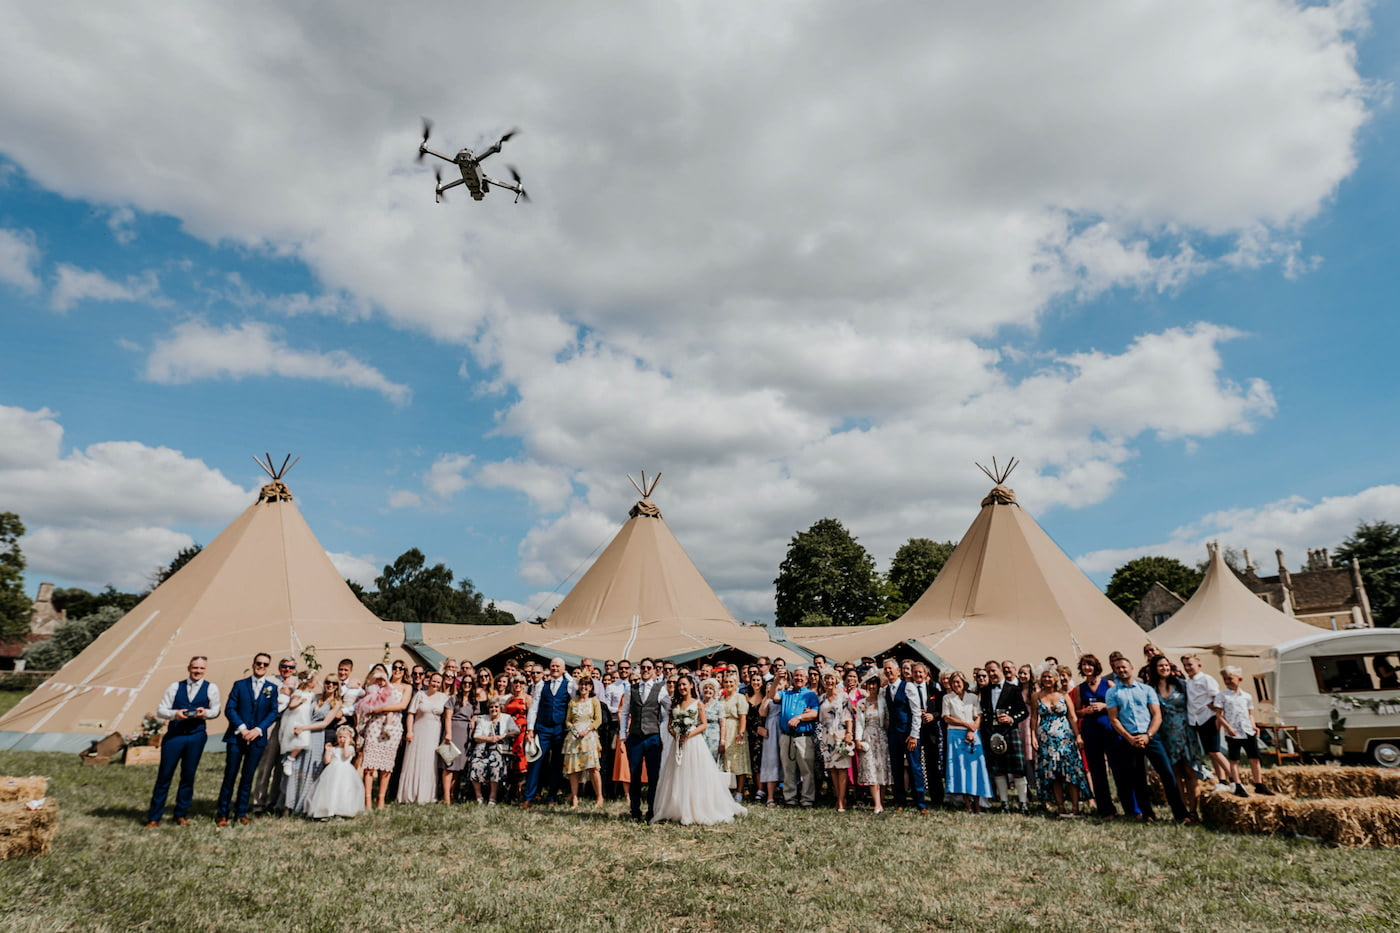 drone taking picture of wedding party